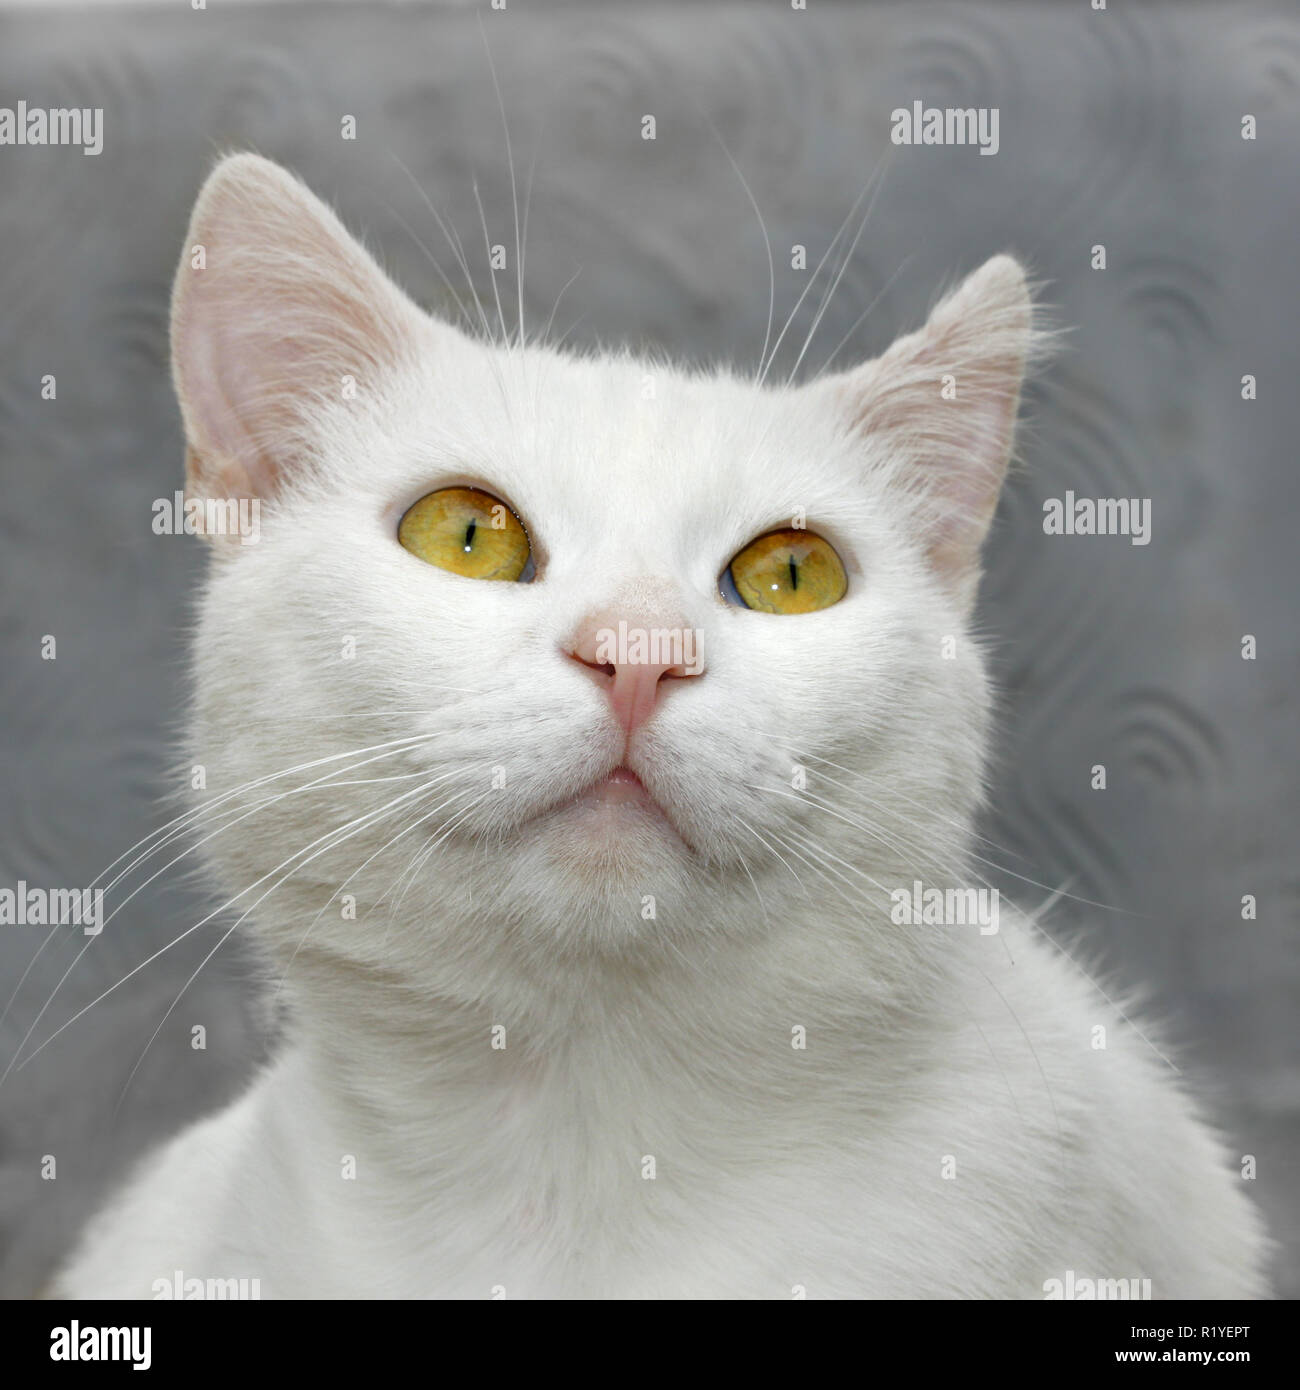 Portrait of a white cute domestic cat close up on a background of gray wall - Stock Image